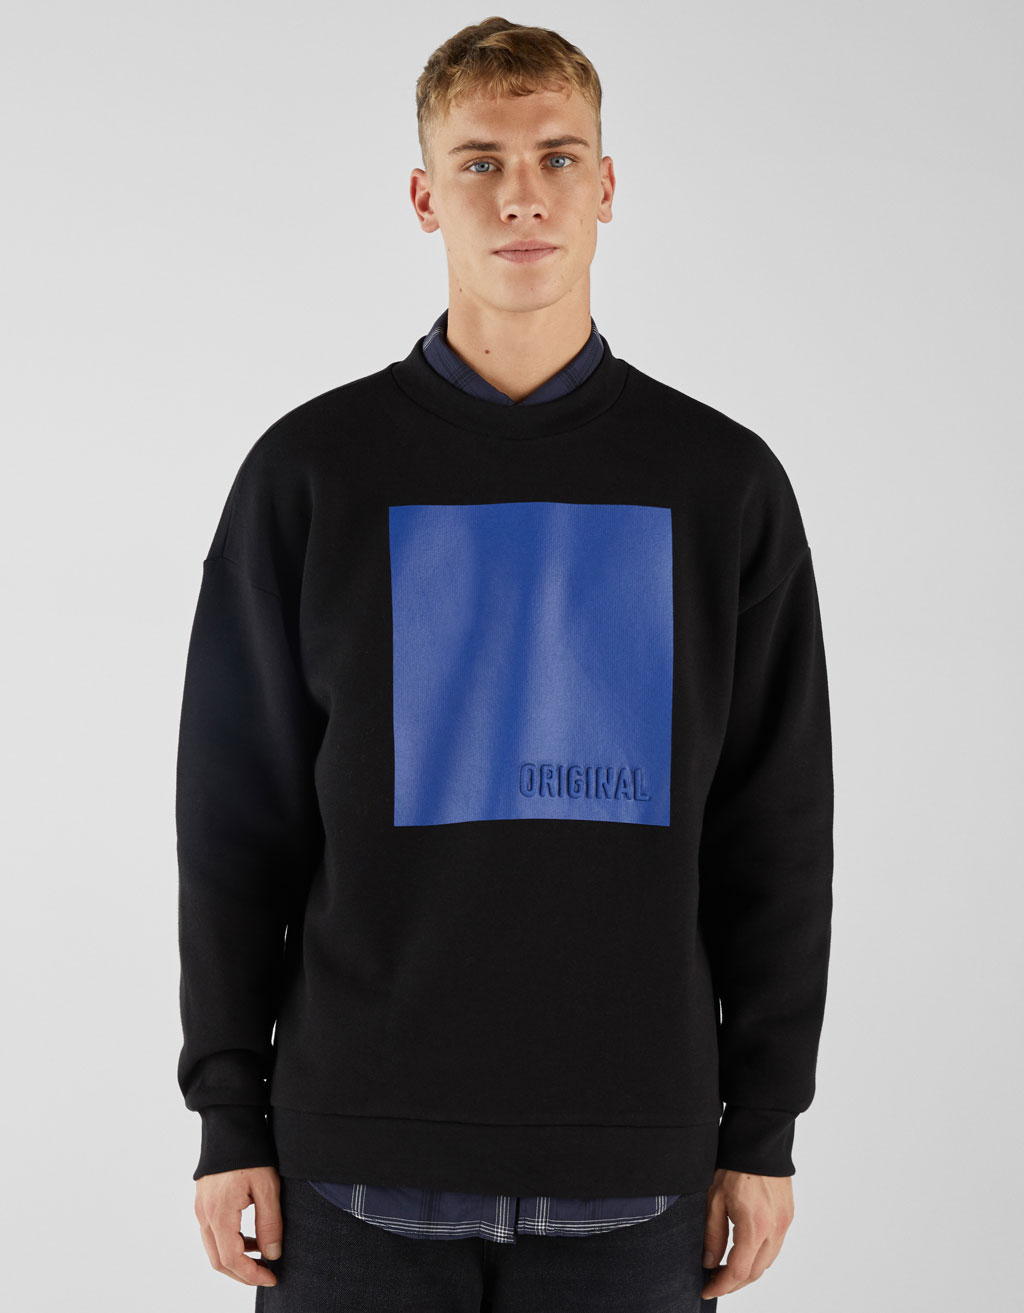 Sweatshirt with raised print